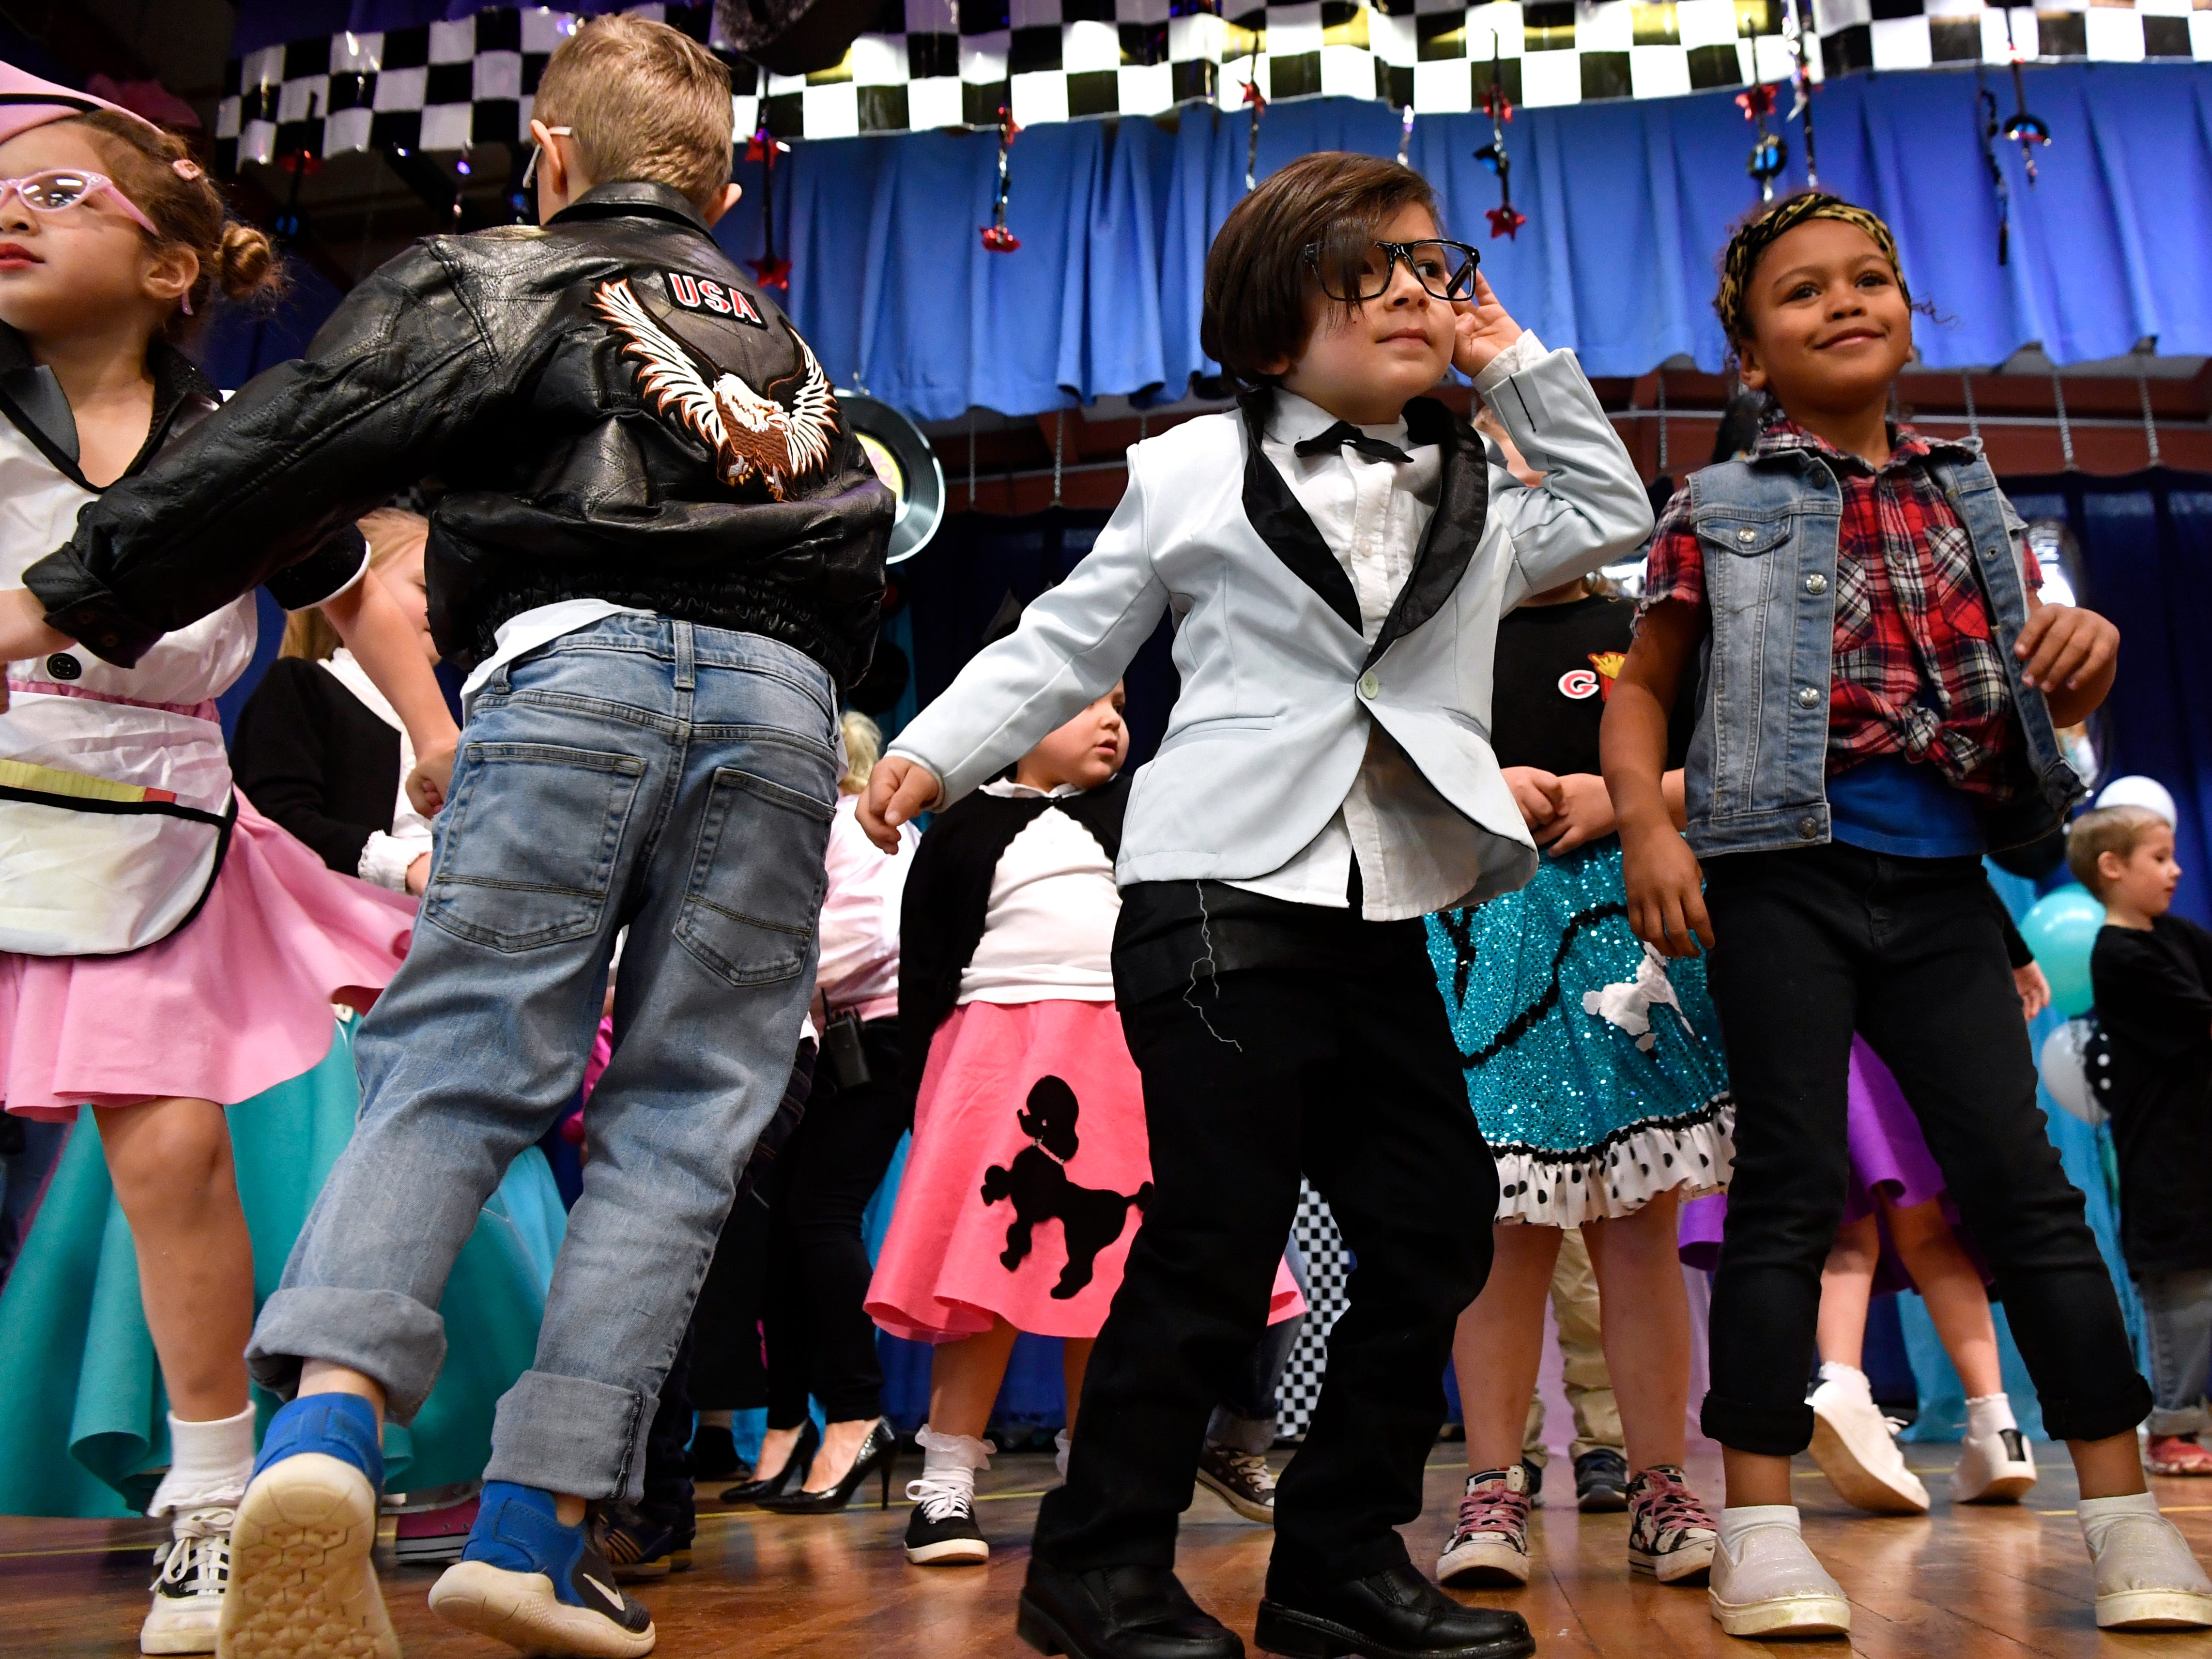 Kindergartner A.J. Rodgriquez cups a hand to an ear as he dances the twist with Evee Mason Jan. 25, 2019. Austin Elementary School students from all grades performed the Twist, the Stroll, and the Hand Jive for family and friends.